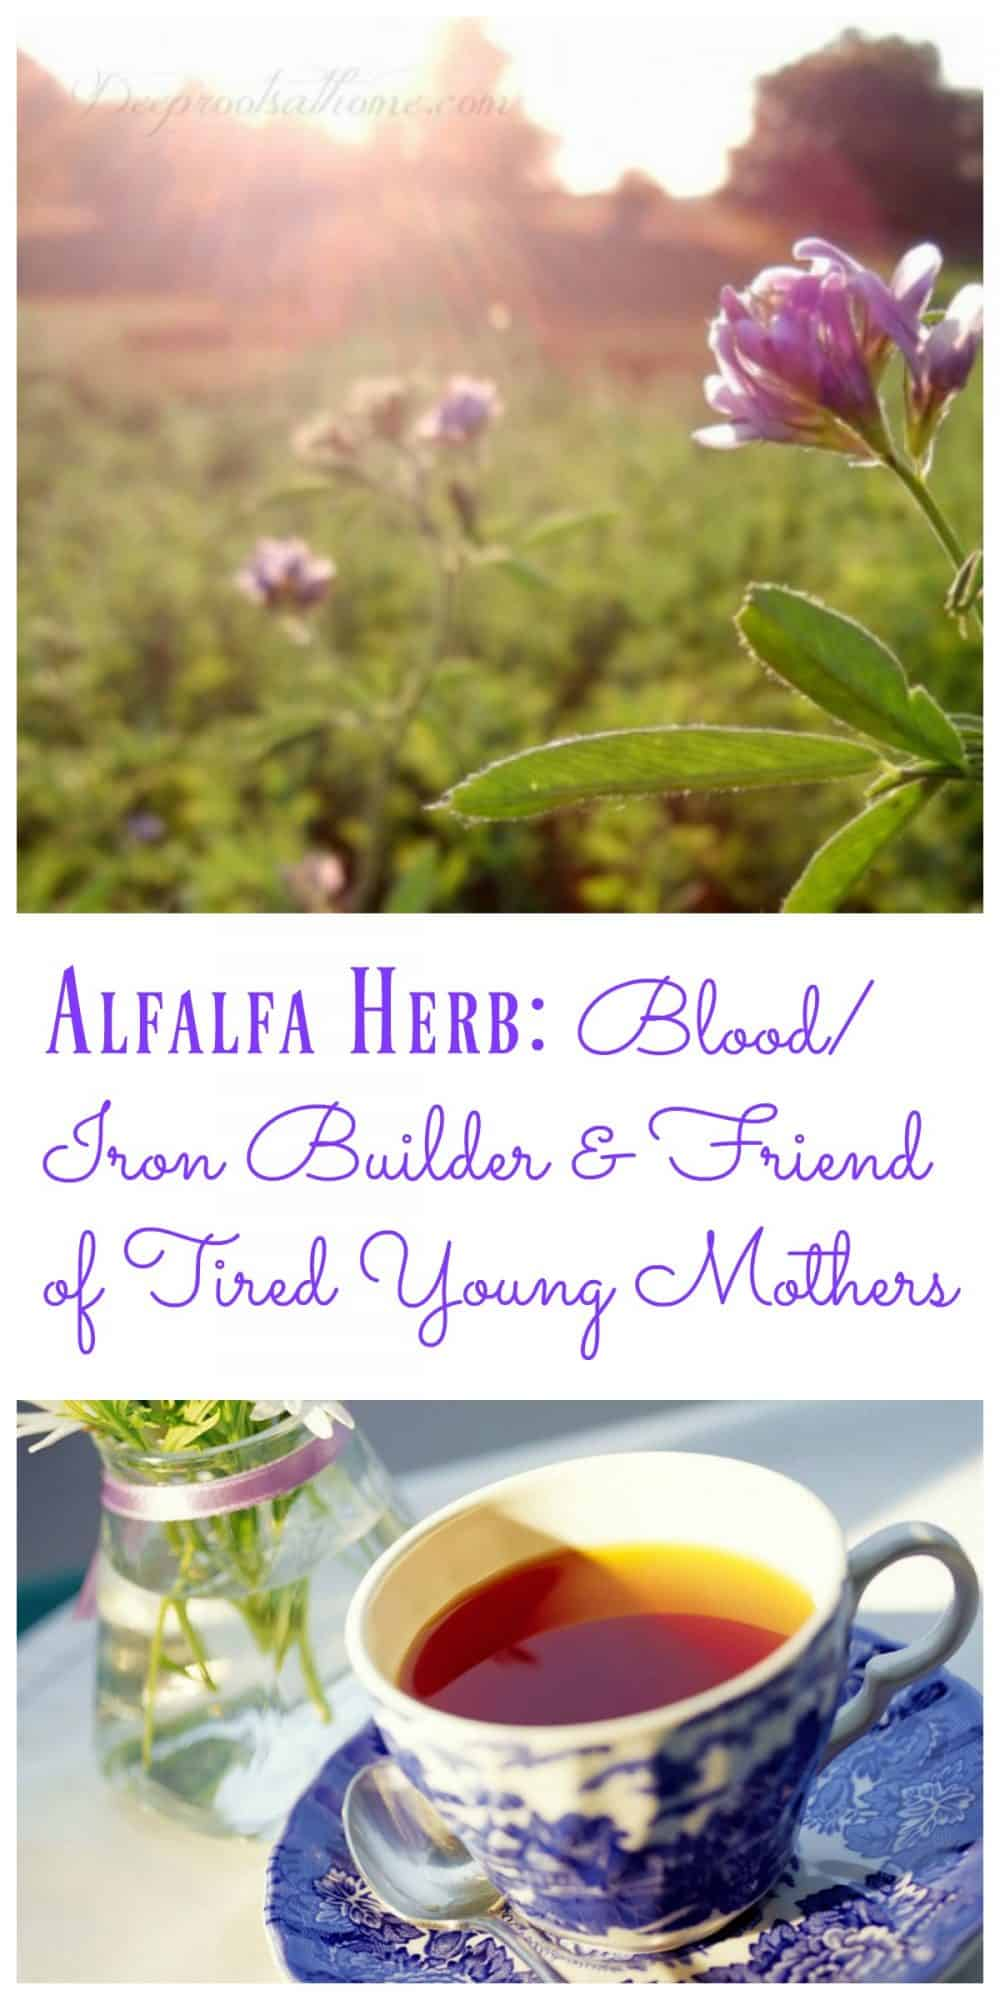 Alfalfa Herb: Blood/Iron Builder & Friend of Tired Young Mothers, alfalfa herb, Bulk Herb Store, cut leaf, organic, harvest, herbal tea, builds iron, detox, increases breast milk, urinary tract infections, blood cleaner, loaded with vitamins, chlorophyll, cancer preventative, Bulk Herb Store, organic, medicago sativa, tonic herb,